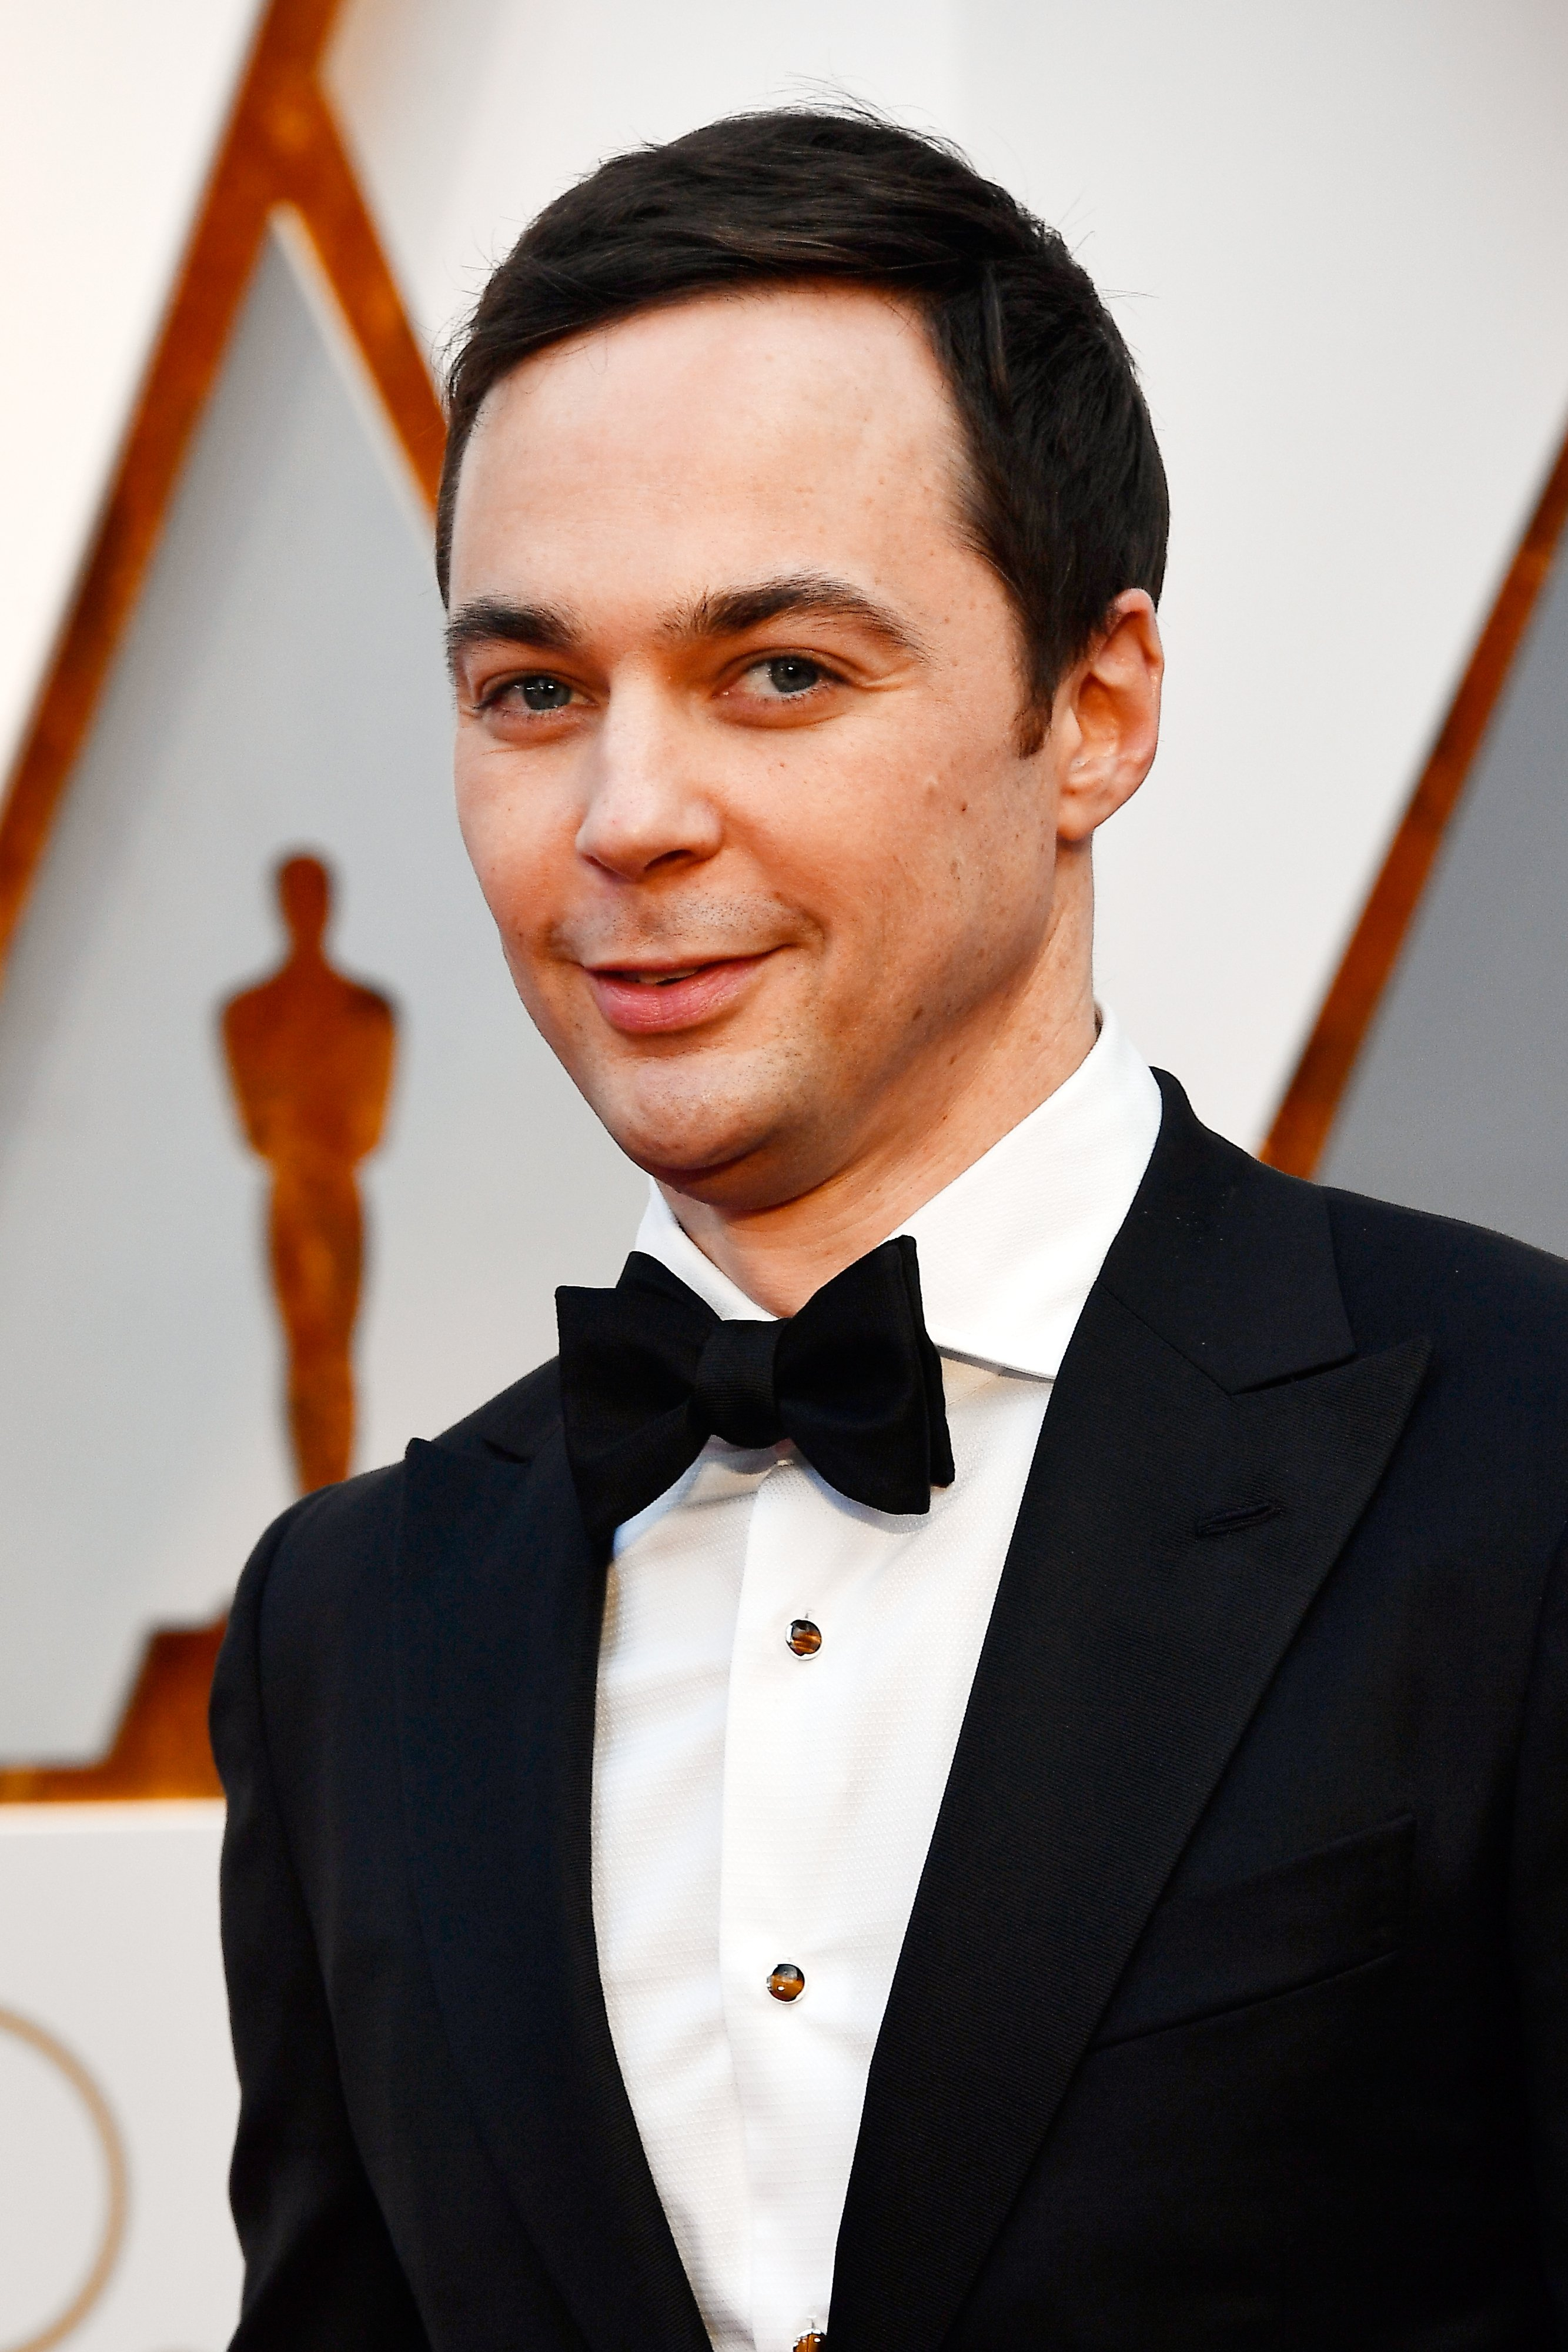 Jim Parsons attends the 89th Annual Academy Awards at Hollywood & Highland Center on February 26, 2017, in Hollywood, California. | Source: Getty Images.